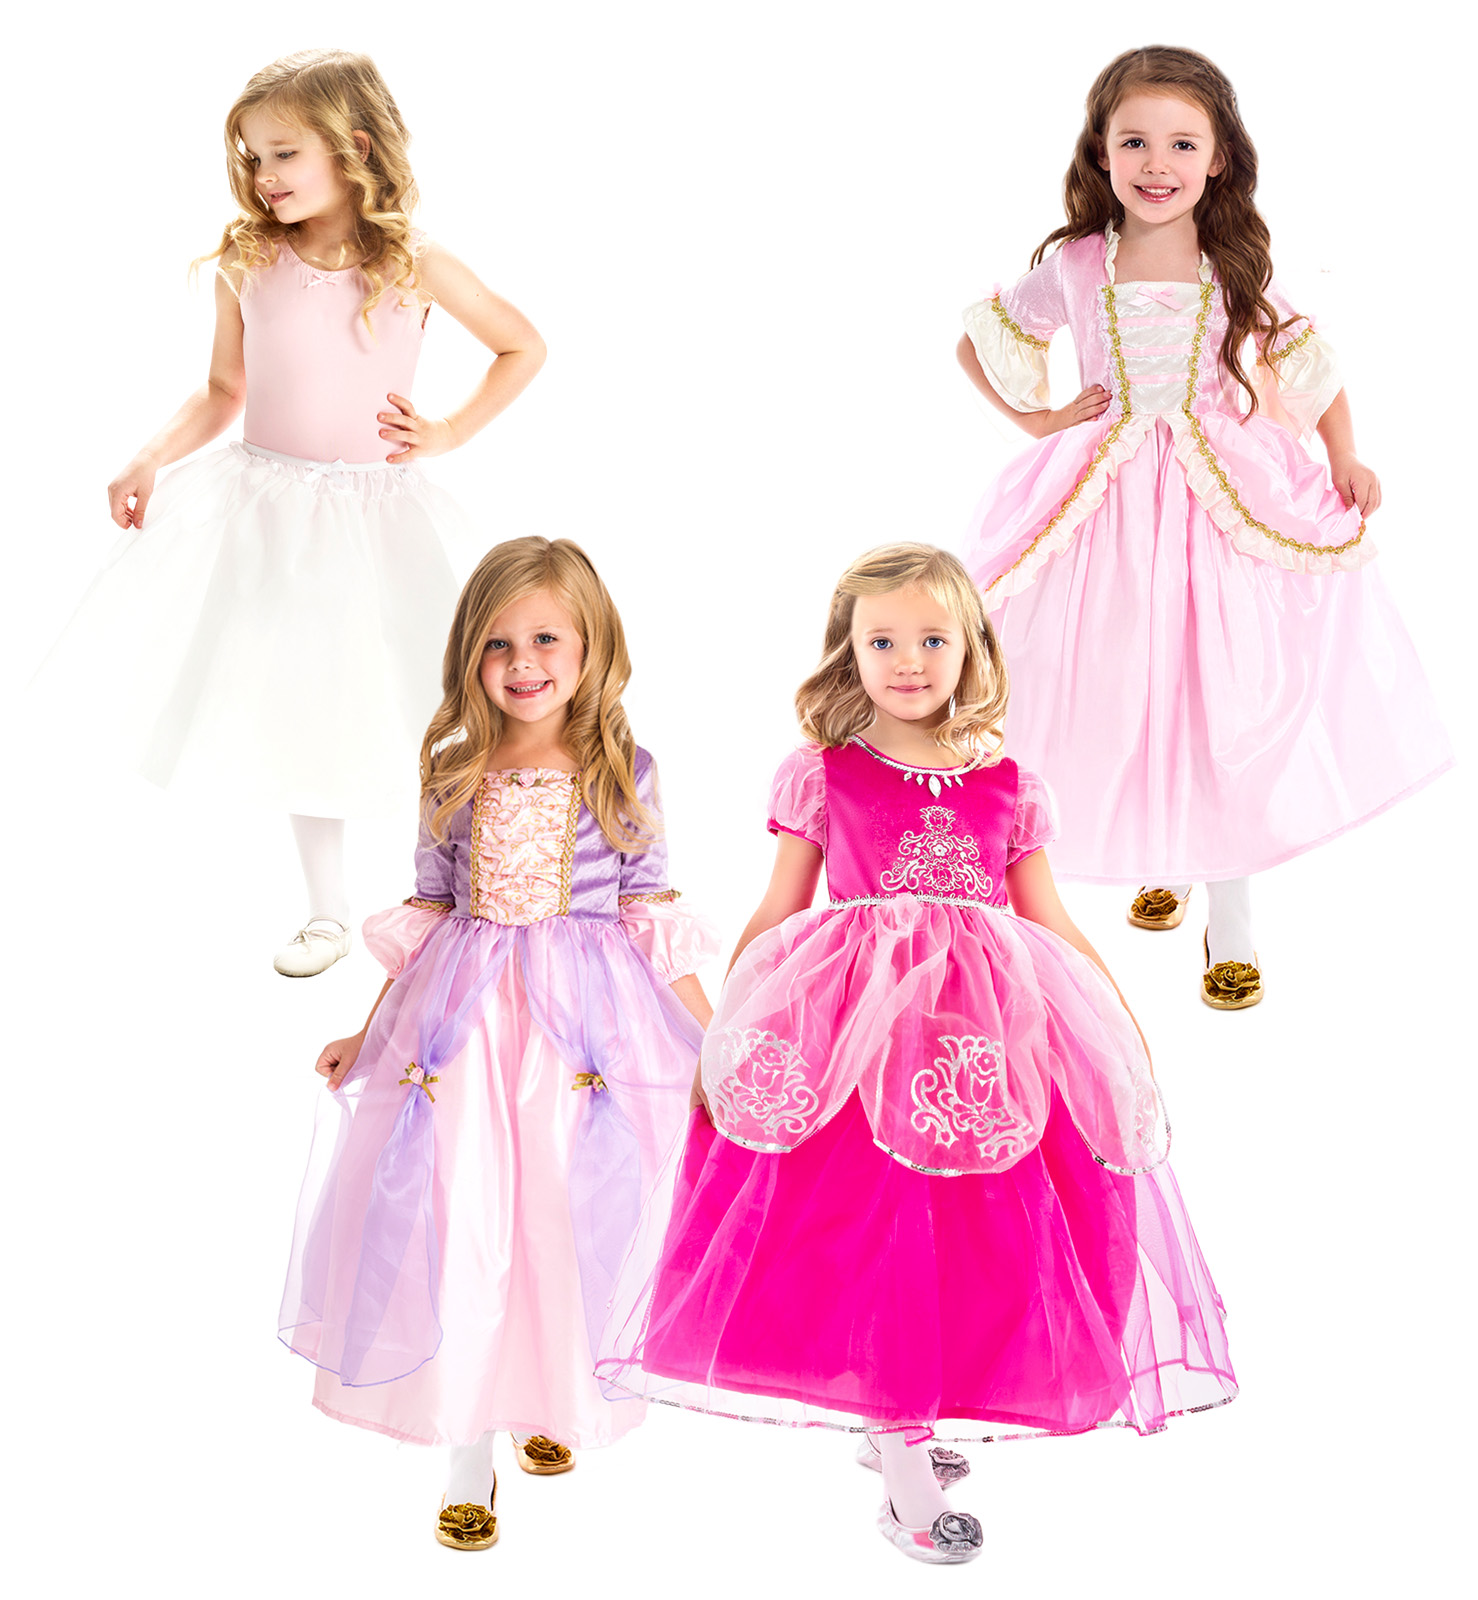 dcc6501172fdc Girly Girl Princess Dress Up and Costume Set | Tangled Inspired Rapunzel